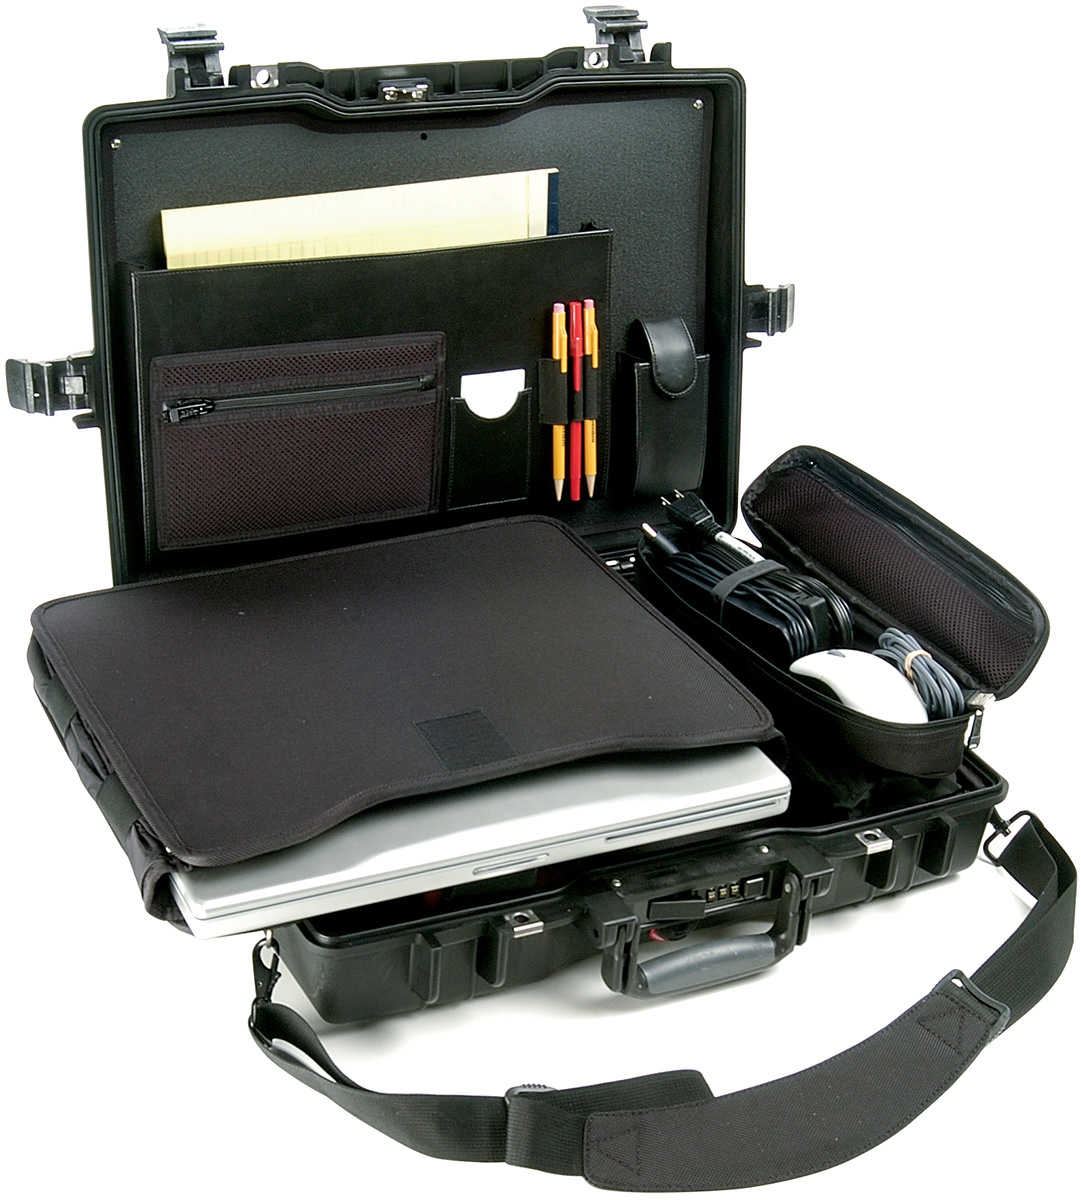 pelican peli products 1495CC1 1495 laptop lockable outdoor case